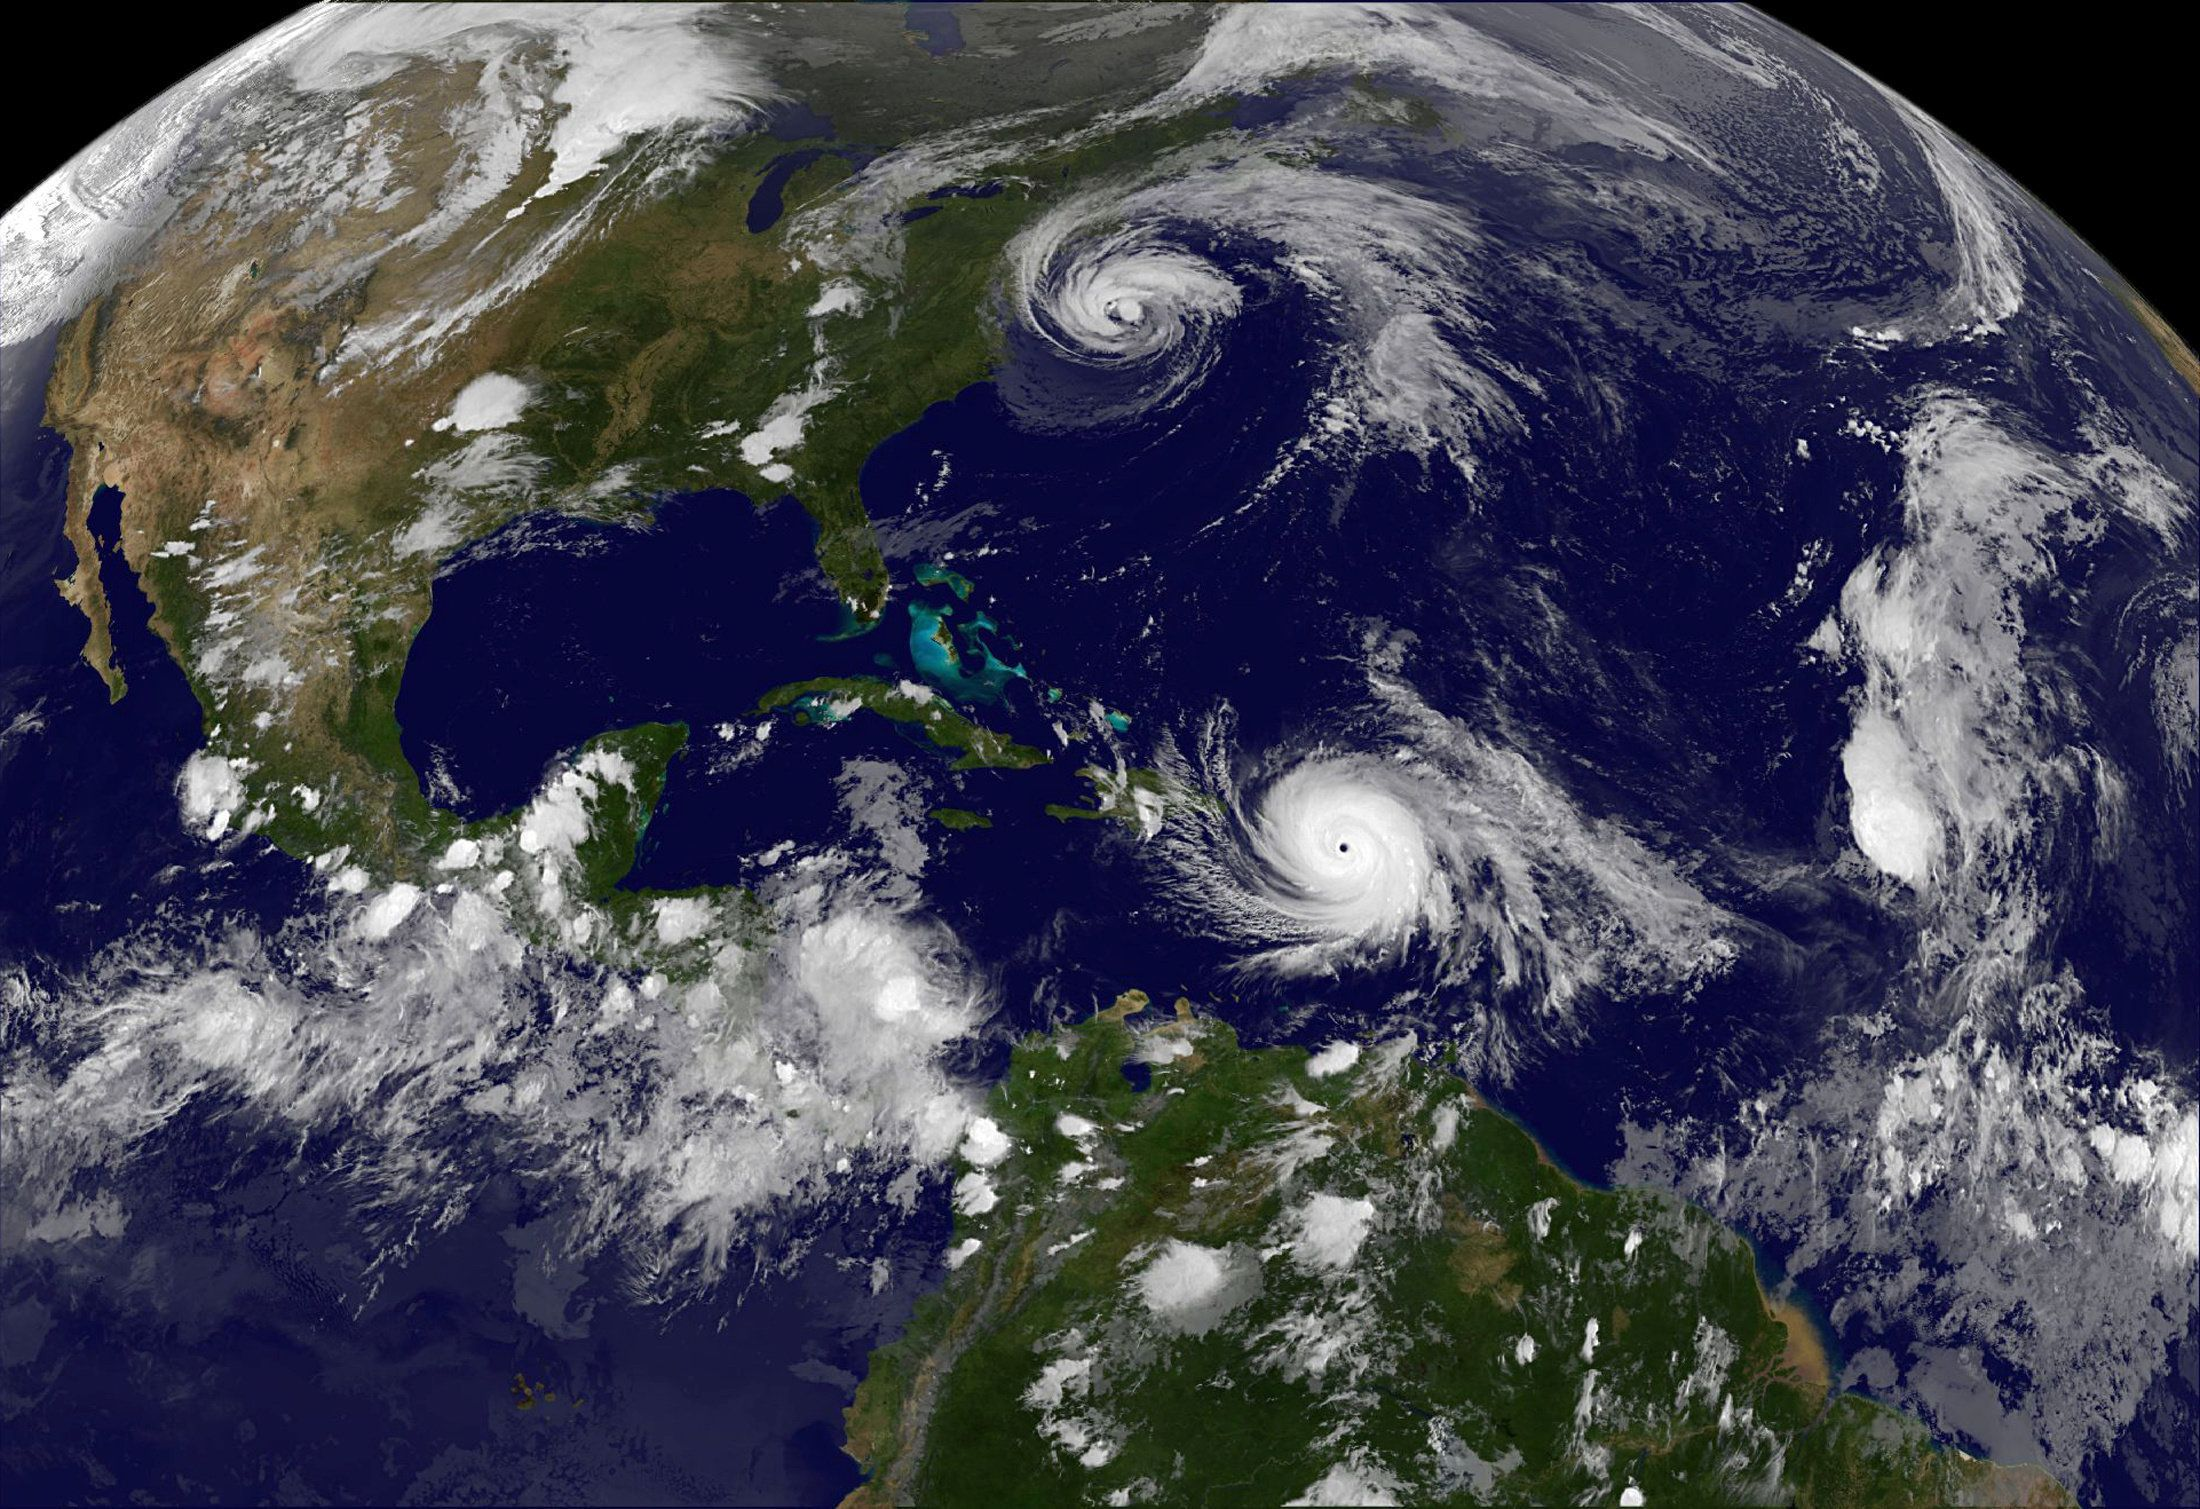 Hurricane Maria which bore down menacingly on the Virgin Islands and Puerto Rico on Tuesday after devastating the tiny island nation of Dominica and Hurricane Jose (top) are both seen in the Atlantic Ocean in this NOAA's GOES East satellite image taken at 21:45 p.m. EDT on September 19, 2017 (0145 UTC, September 20, 2017).     Courtesy NASA/NOAA GOES Project/Handout via REUTERS  ATTENTION EDITORS - THIS IMAGE WAS PROVIDED BY A THIRD PARTY.